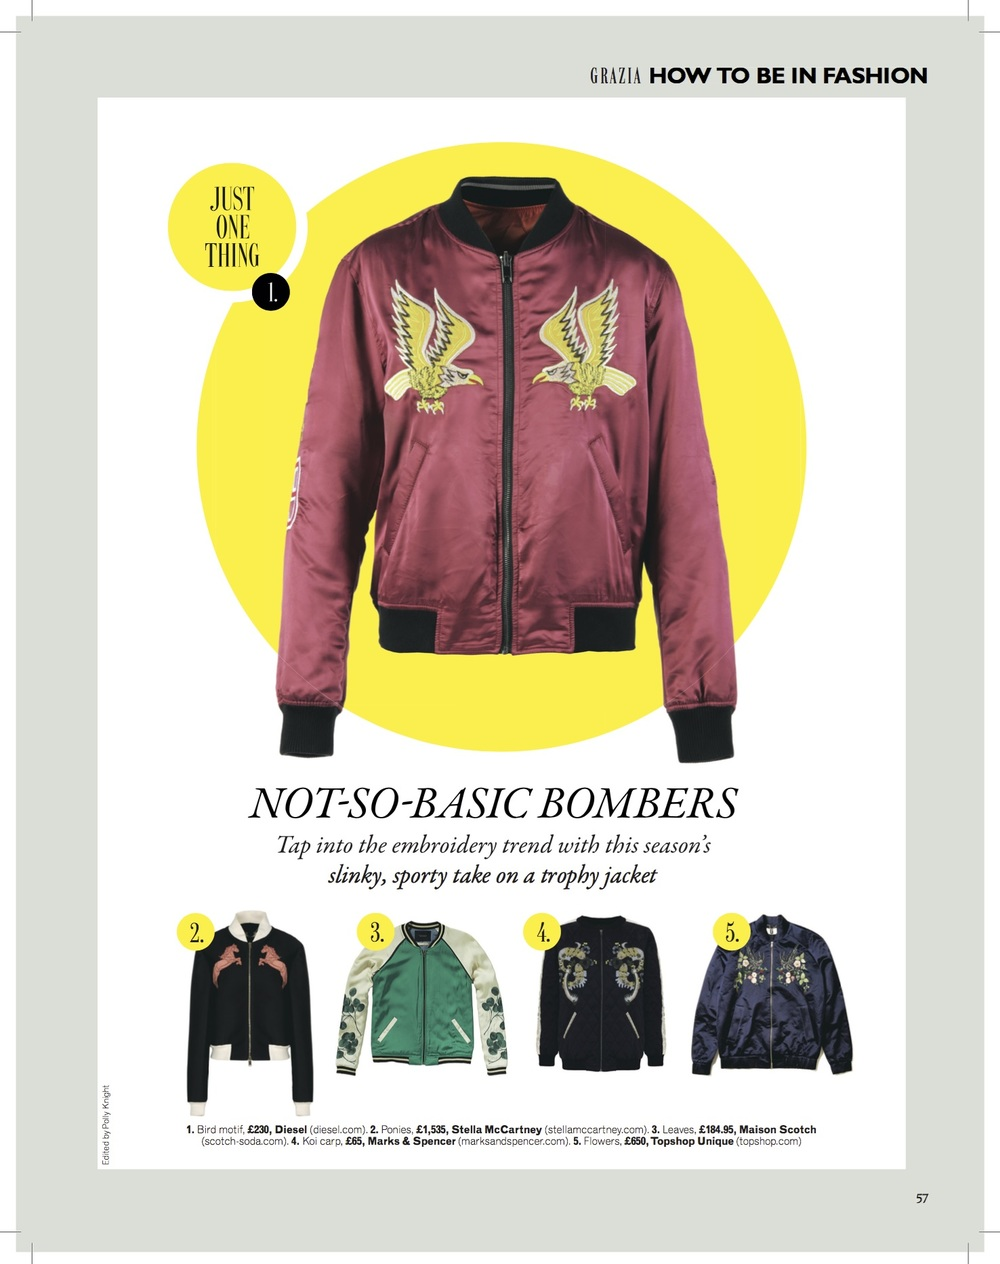 Fashion_JustOneThing Silk Bomber_pdf_1 copy.jpg